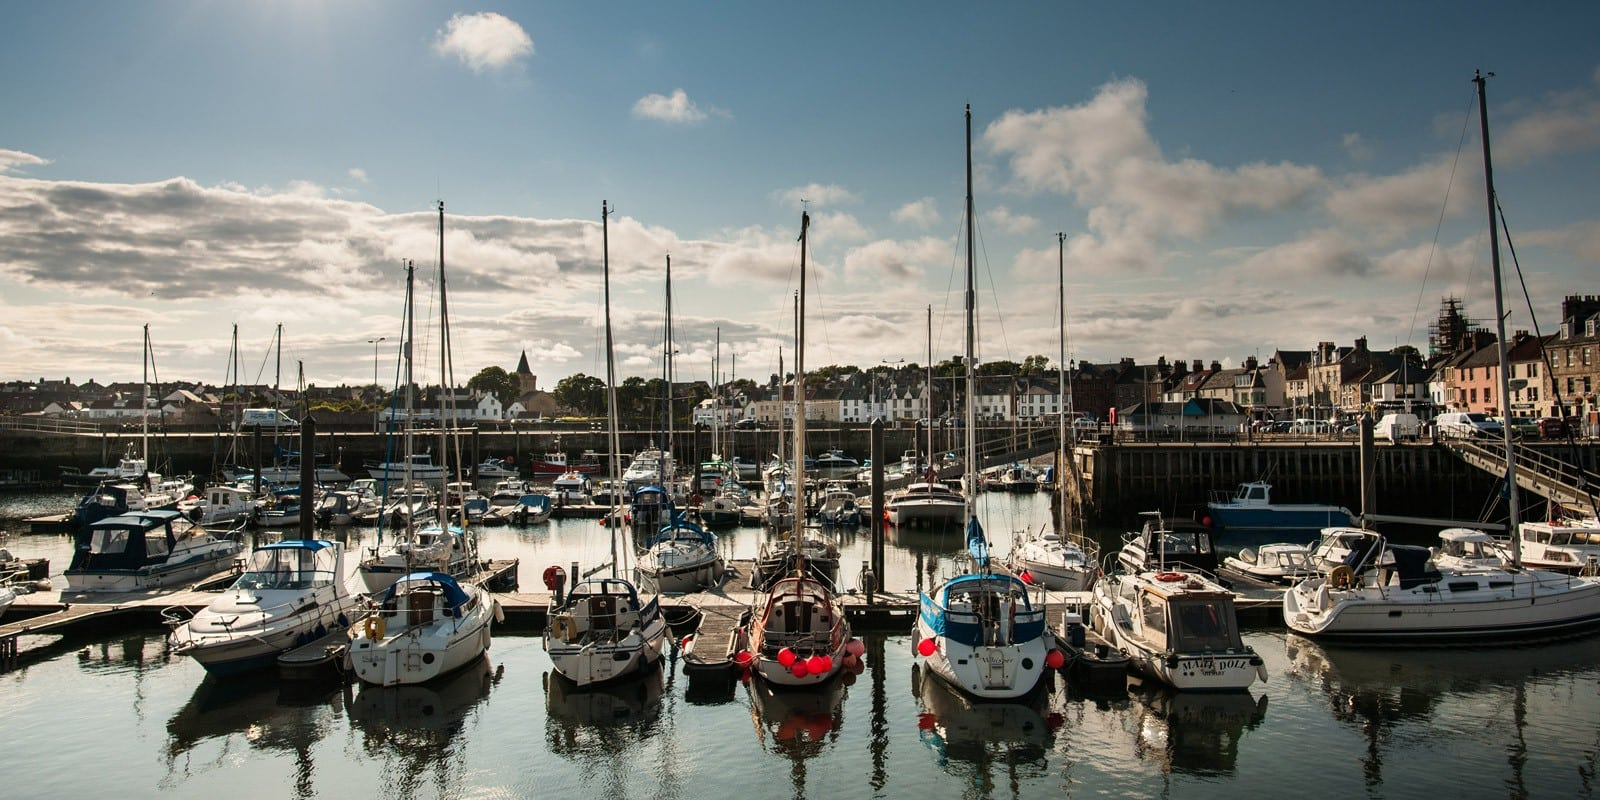 Anstruther | Silverdykes - Seaside homes